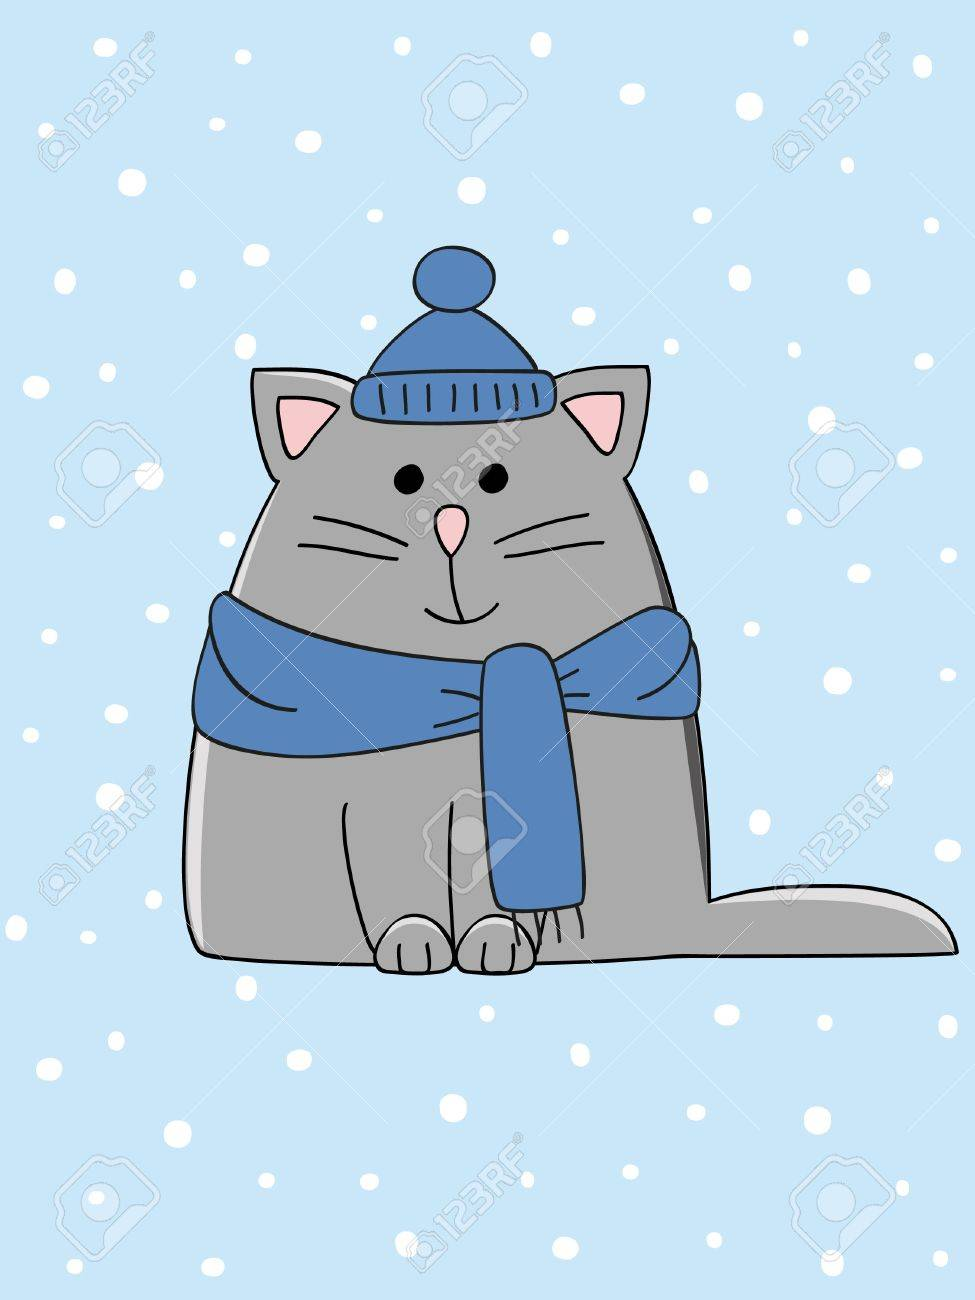 a cute winter dressed kitten on a snowy background Stock Vector - 10419911